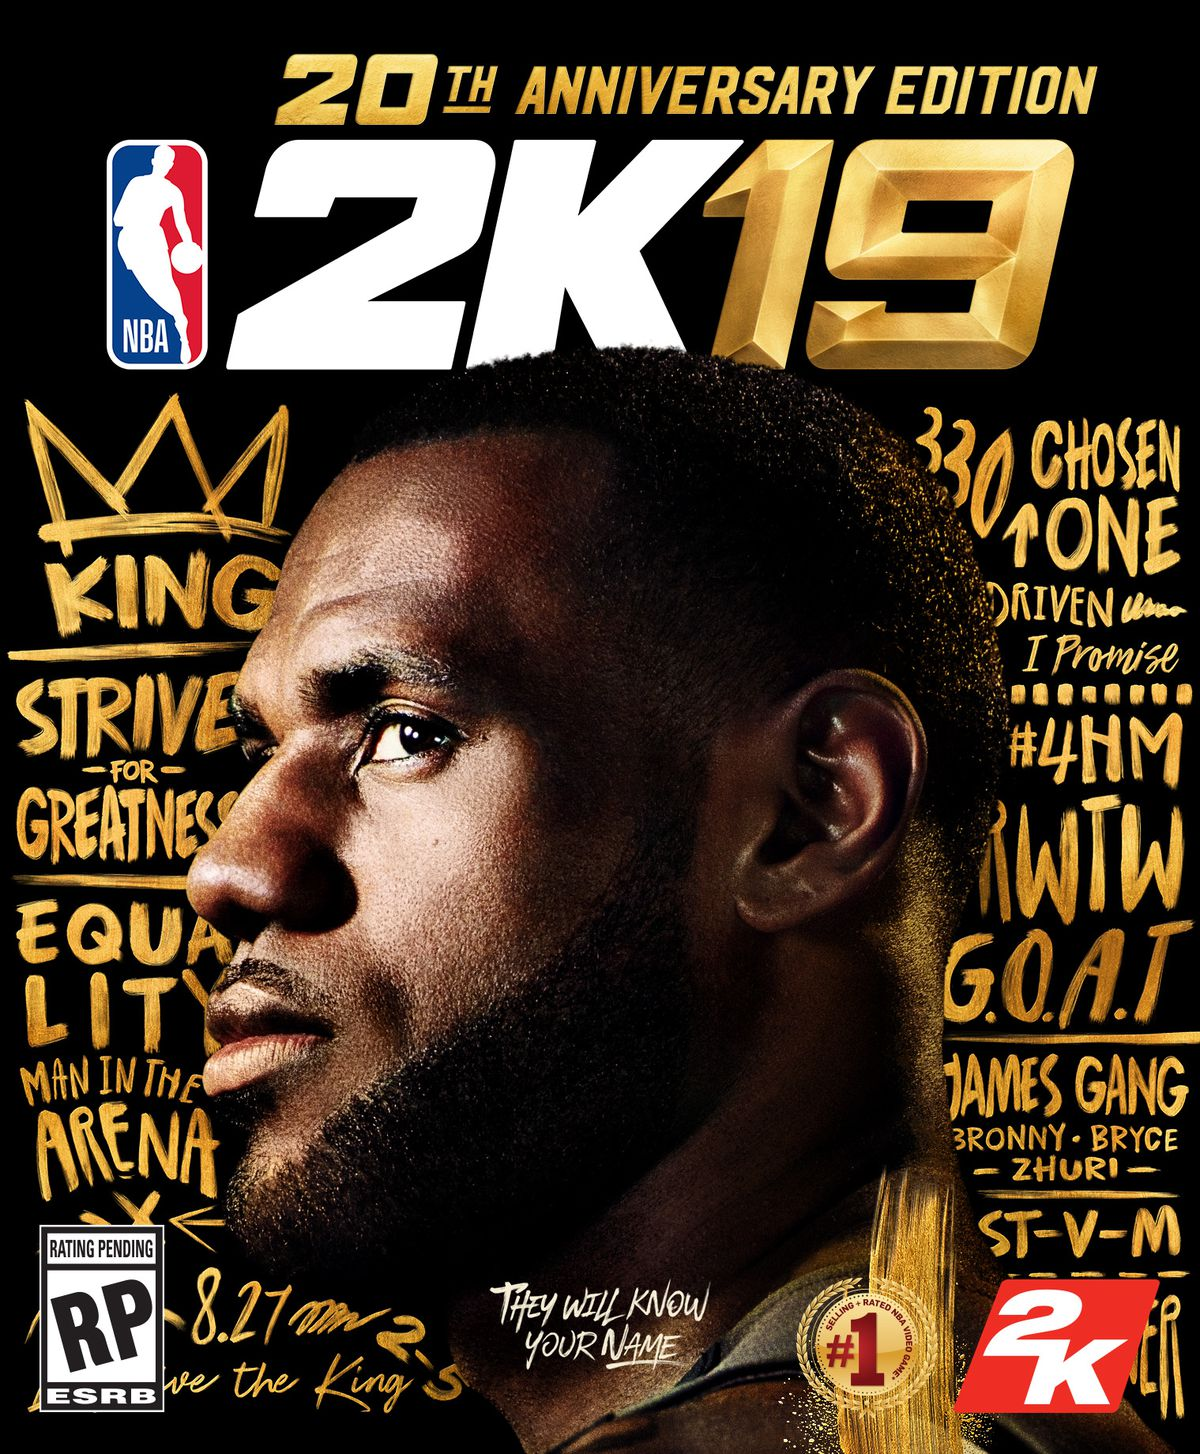 NBA 2K19's cover star, launch date, special edition details and more - Polygon